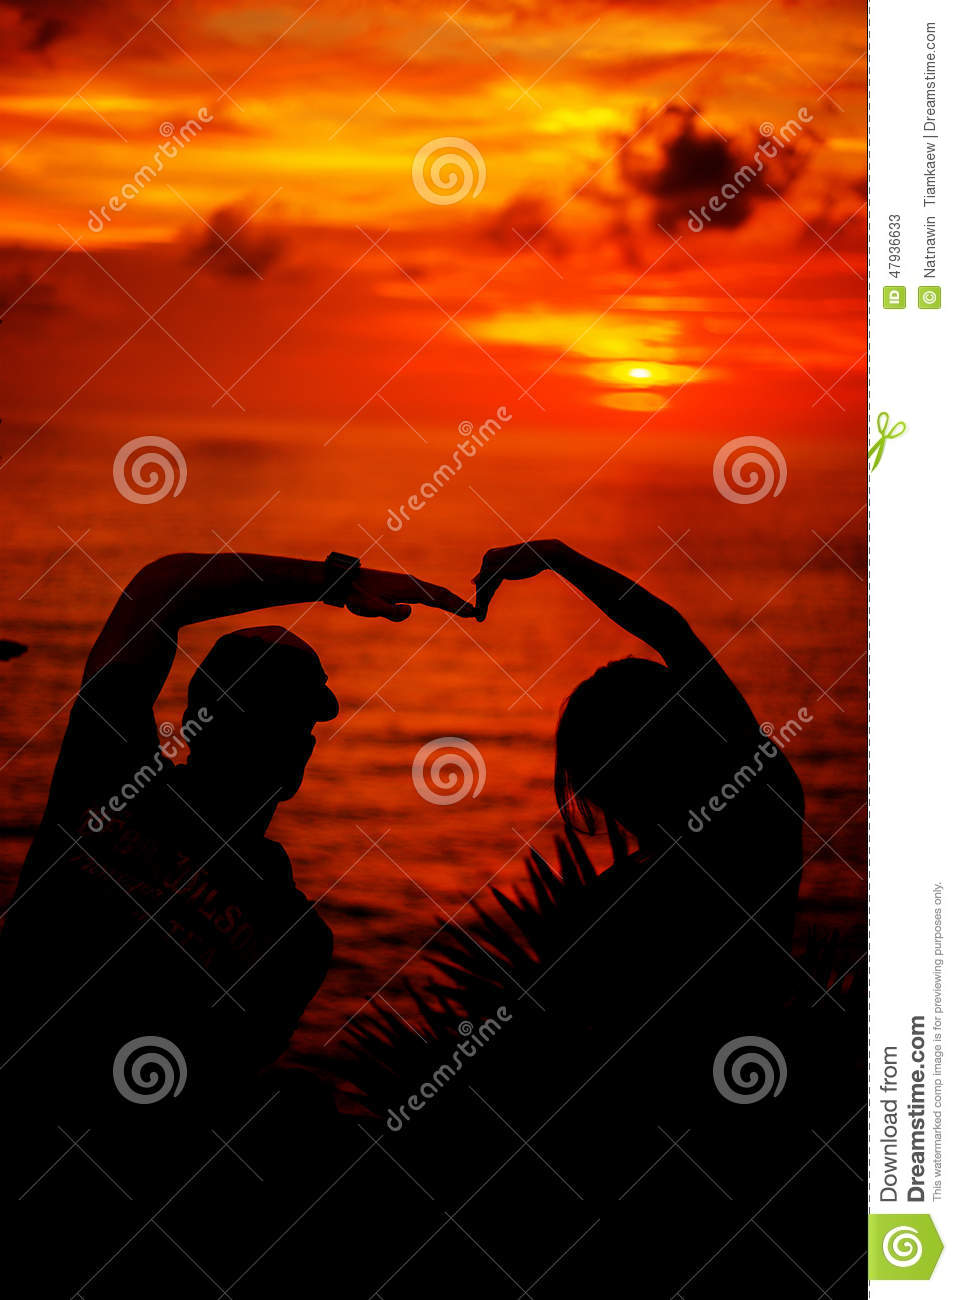 Love story on sunset